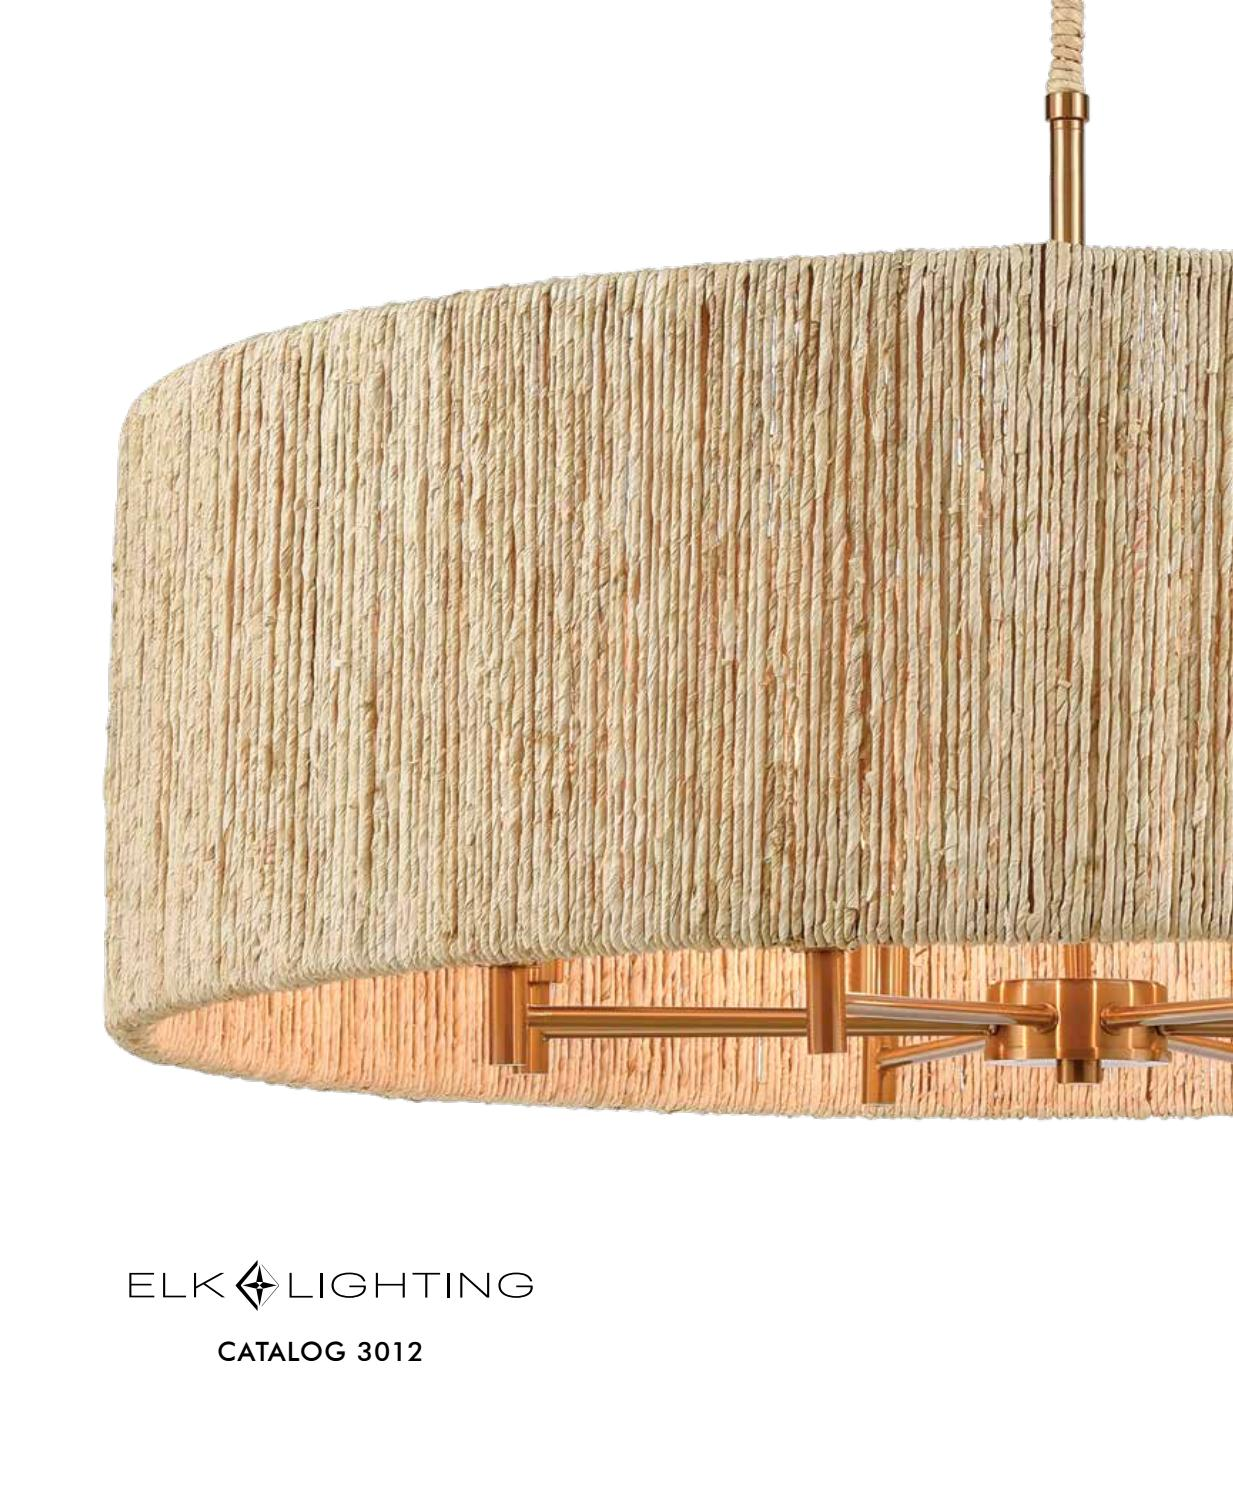 ELK Lighting 3012 Catalog by ELK Group International issuu